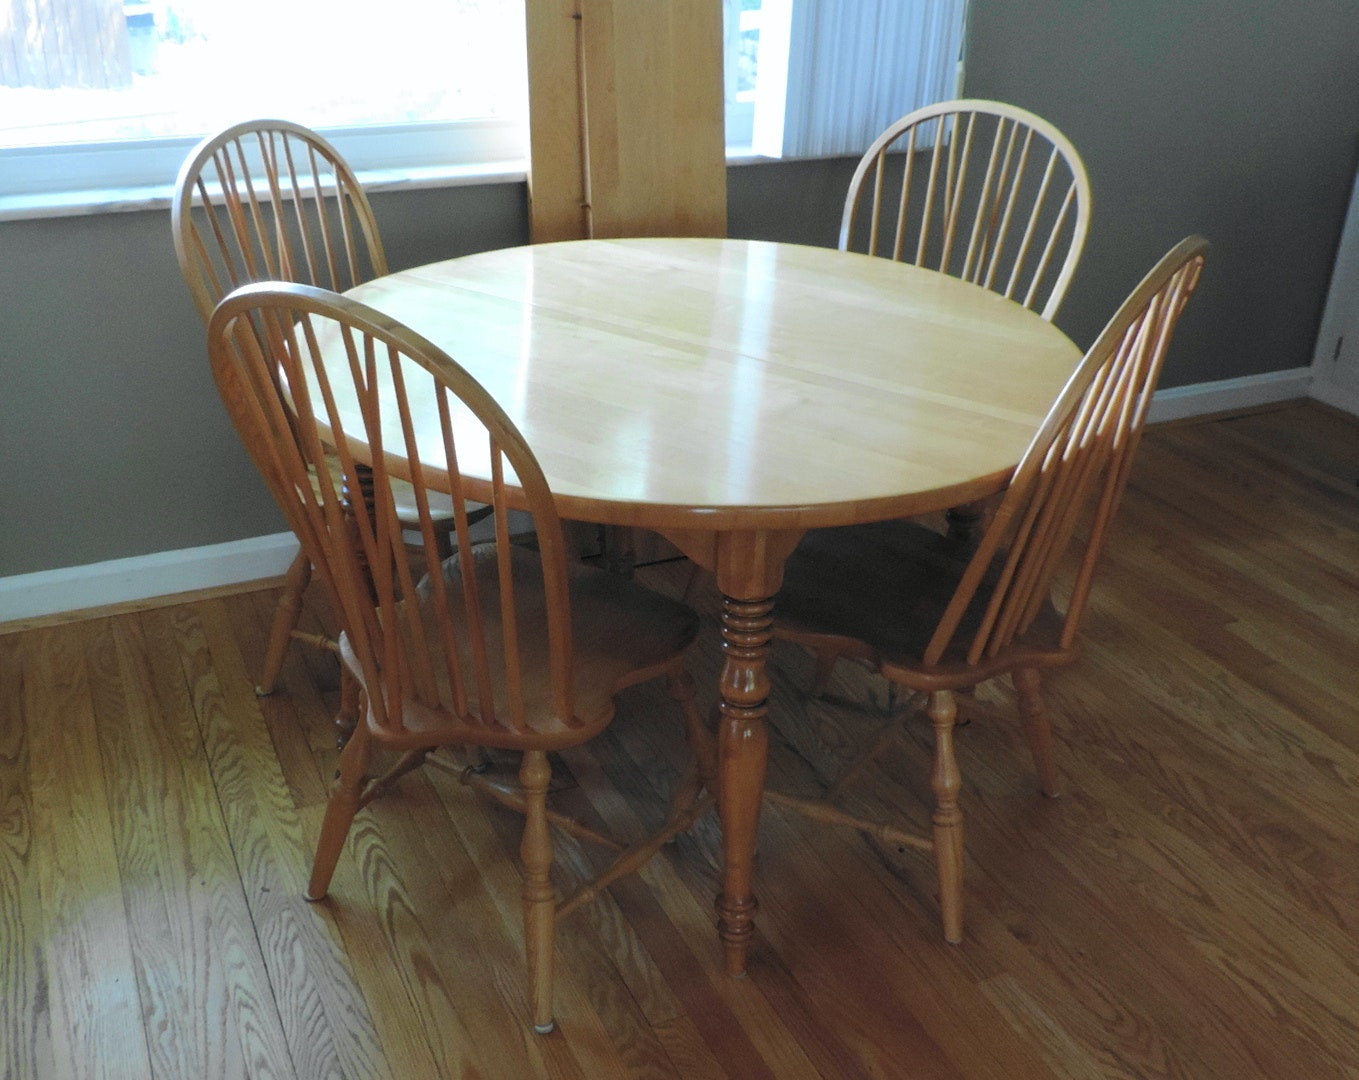 Maple Kitchen Table With Chair And Bench Ebth: Maple Dining Table With Four Chairs And Two Leaves : EBTH